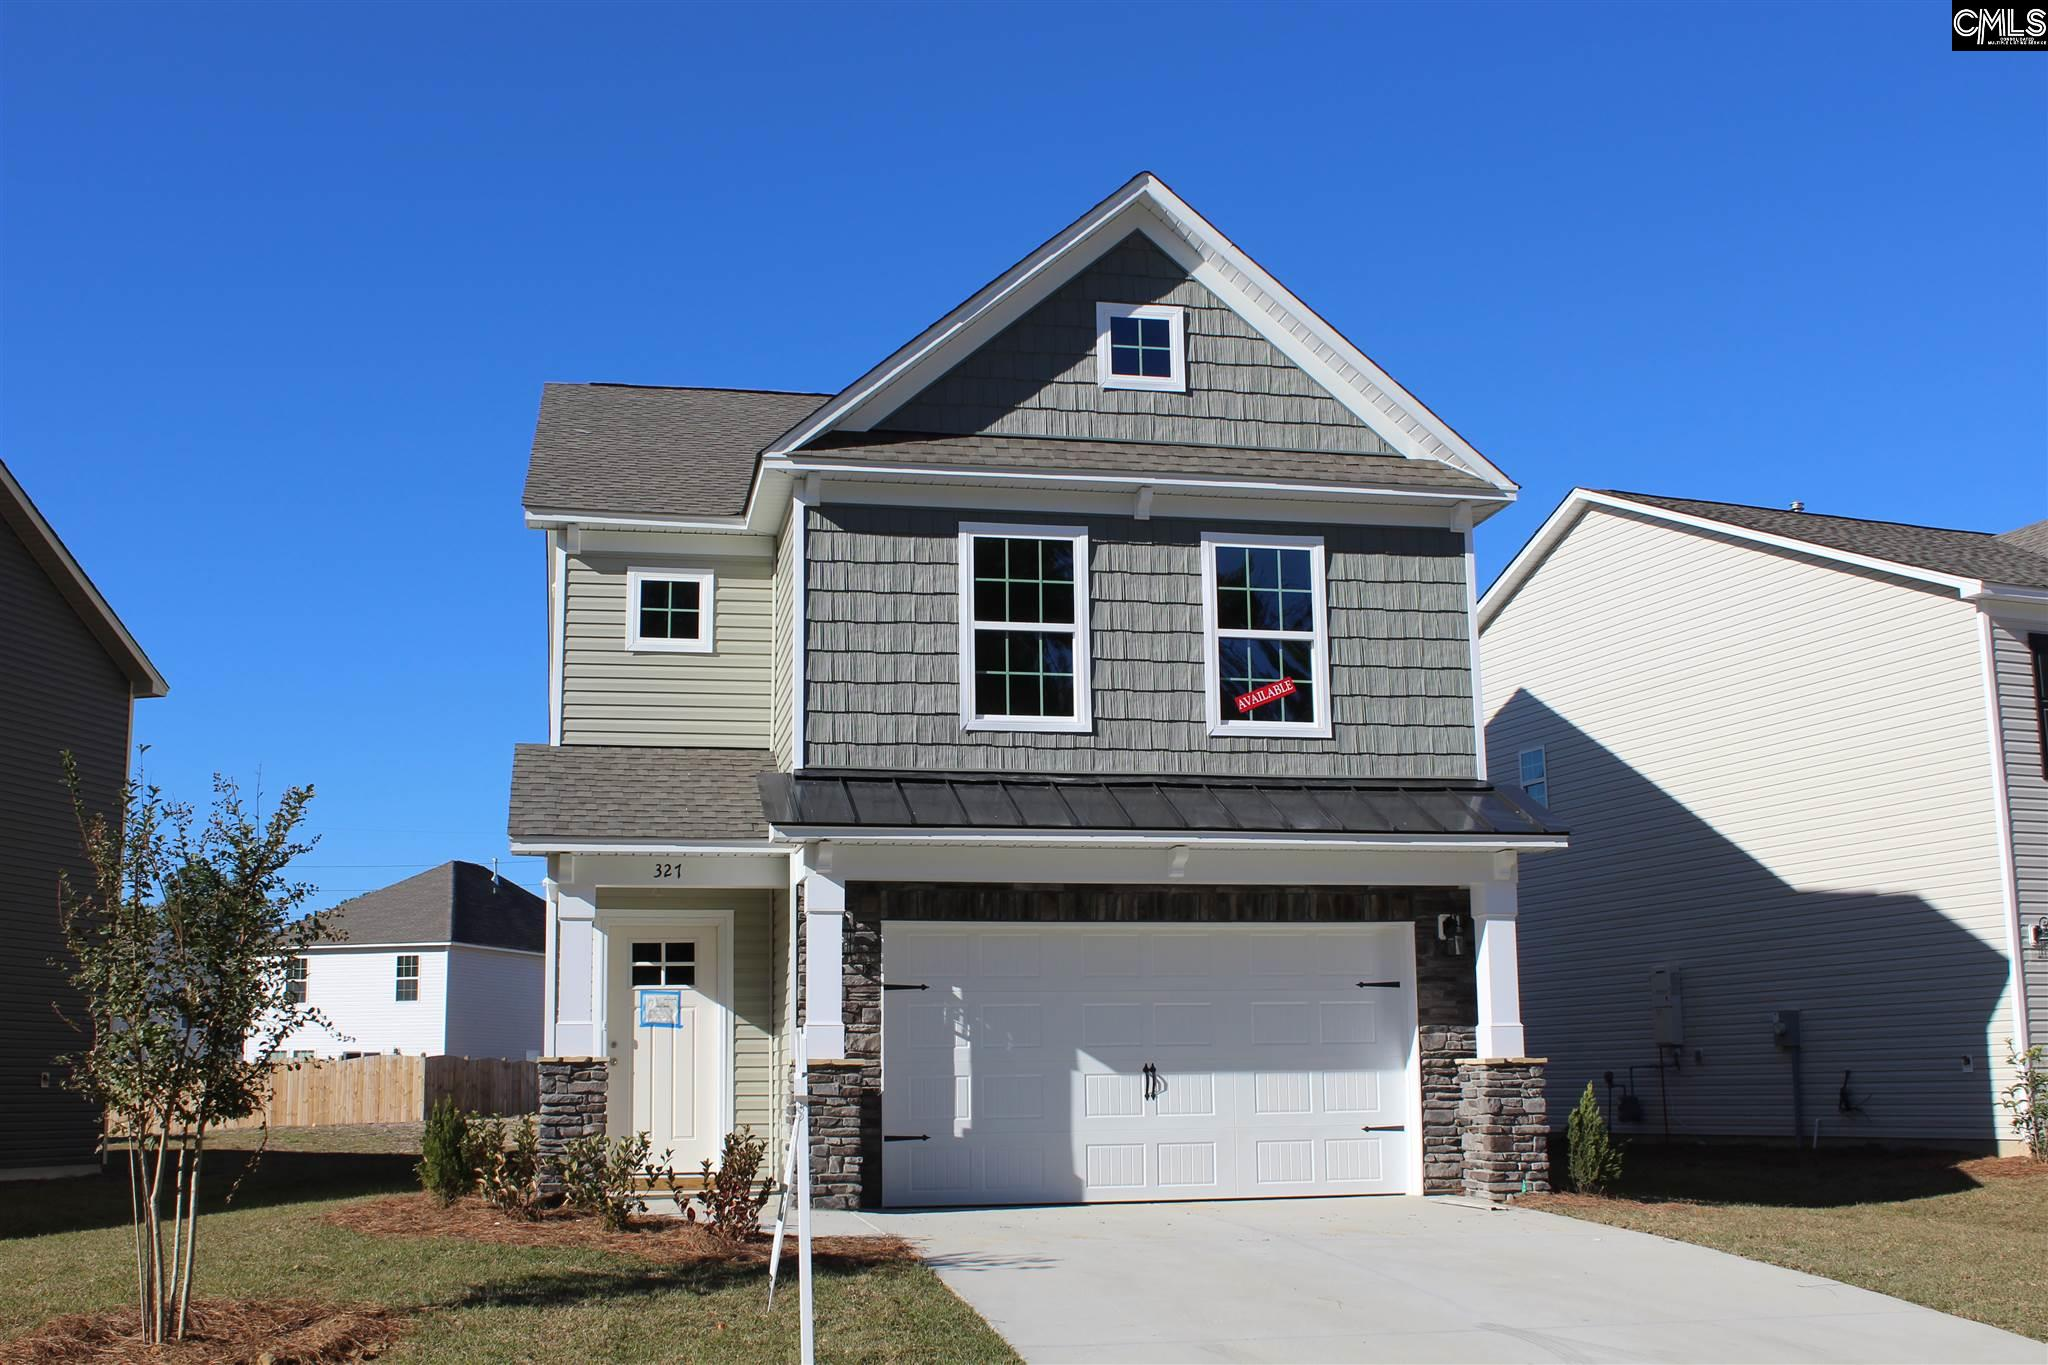 327  Fairford #26 Blythewood, SC 29016